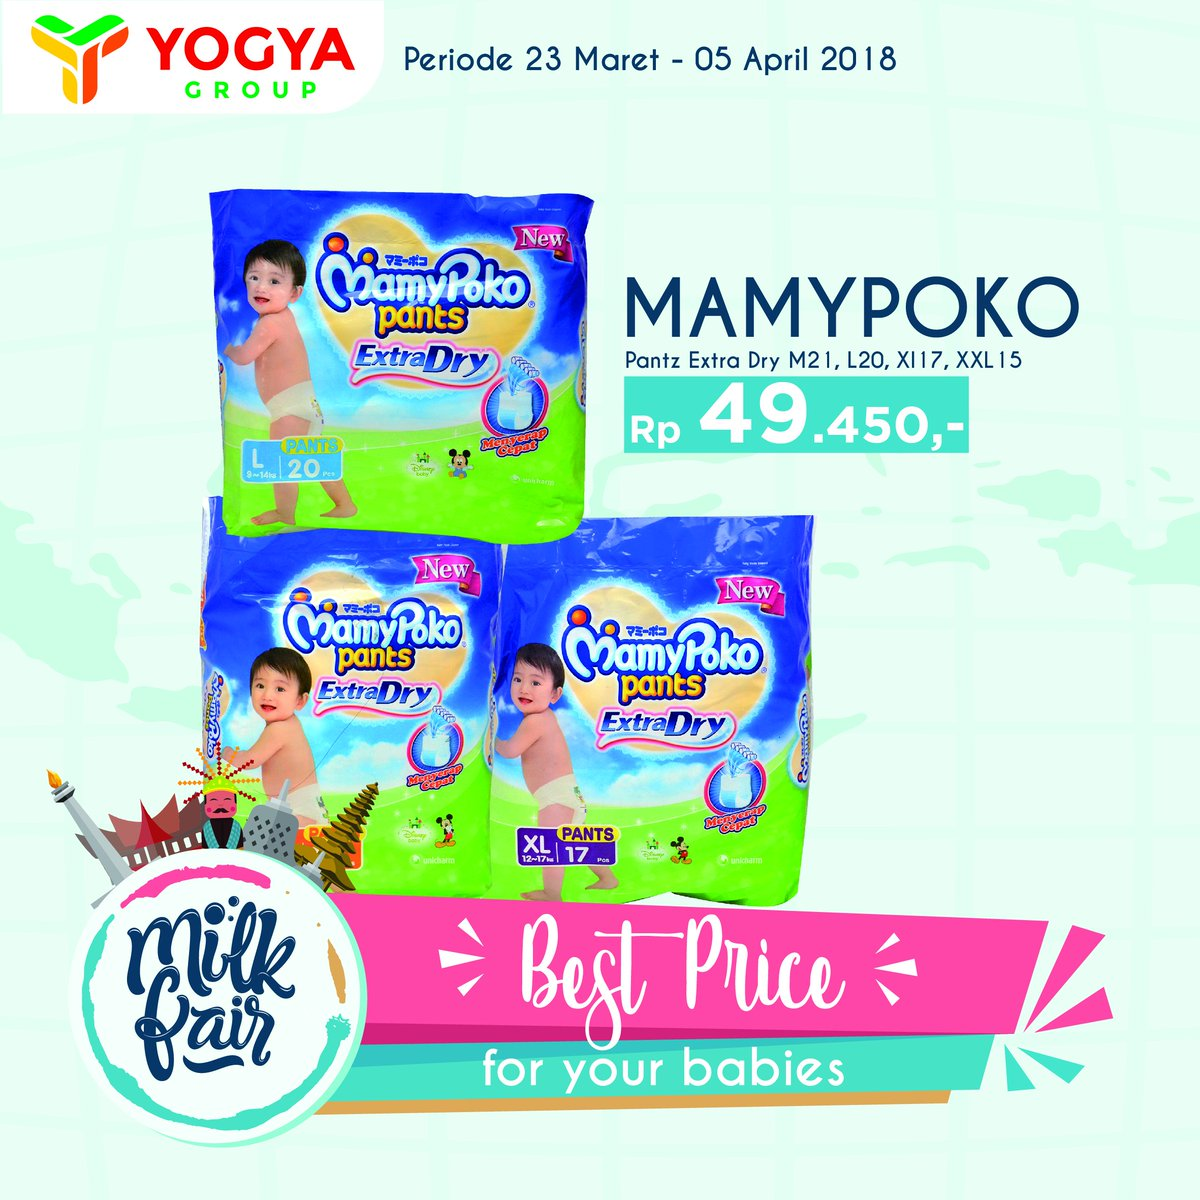 Yogya Group On Twitter Best Price Foryourbabies Mamypoko Pants Diapers L20 Extra Dry M21 Xl17 Xxl15 Rp 49450 Milk Fair 2018